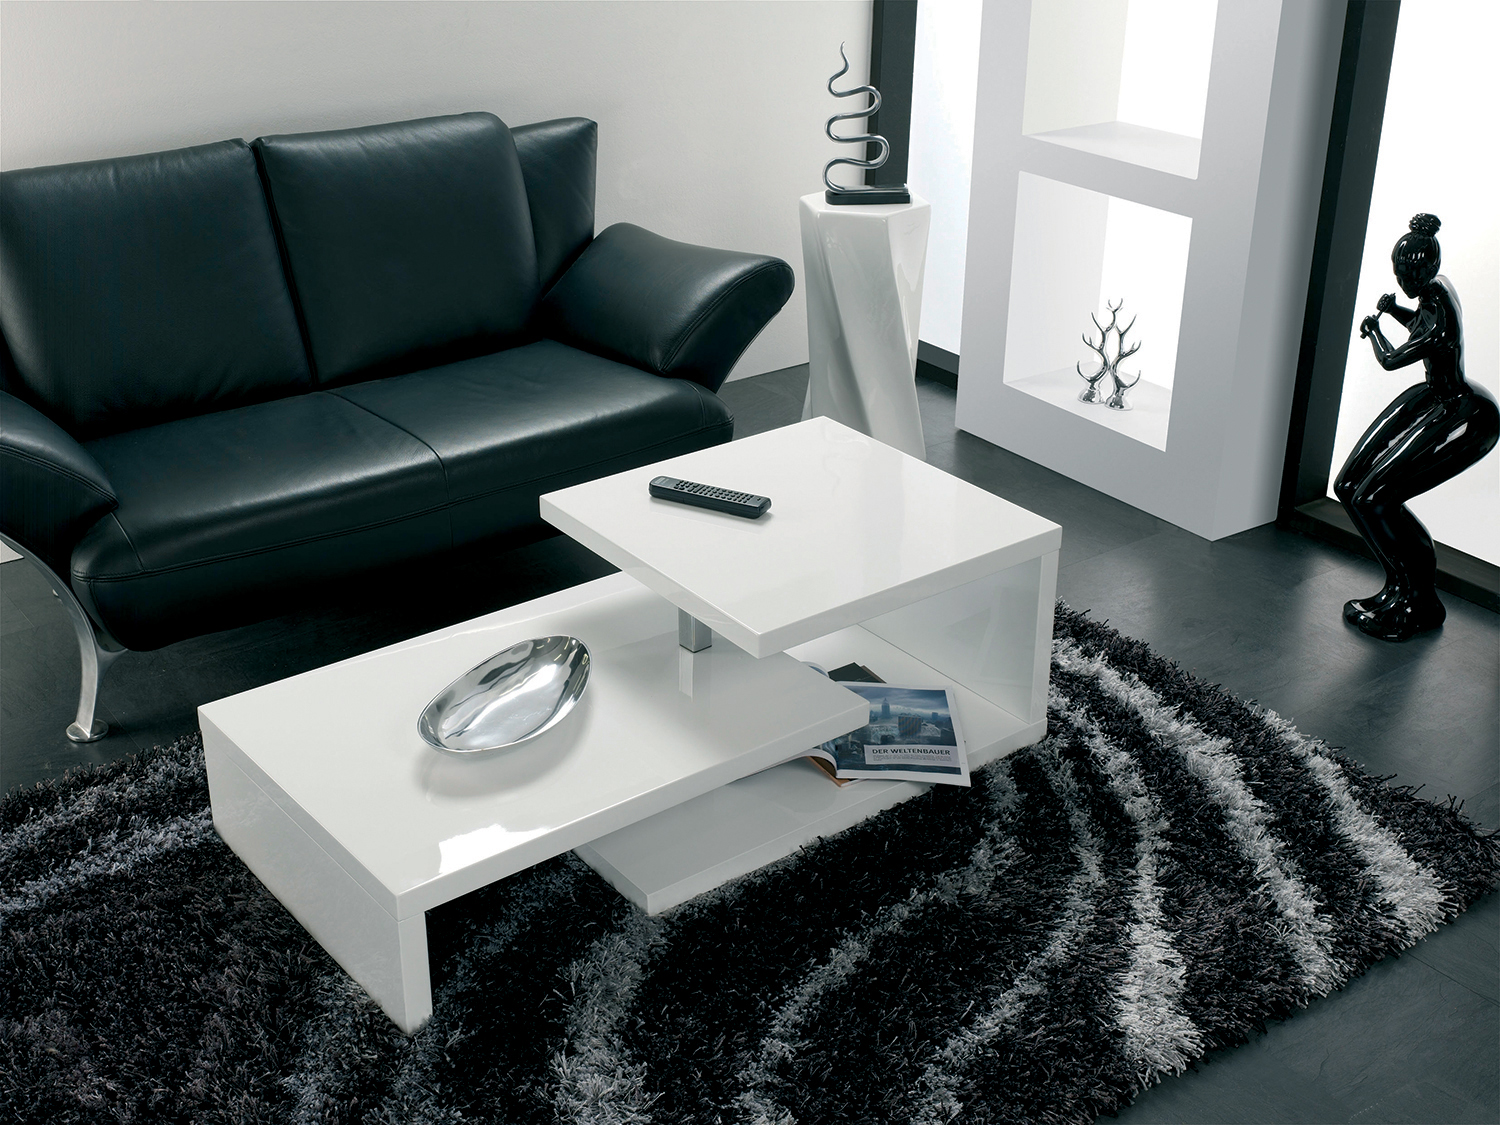 bien choisir une table basse pour son salon. Black Bedroom Furniture Sets. Home Design Ideas